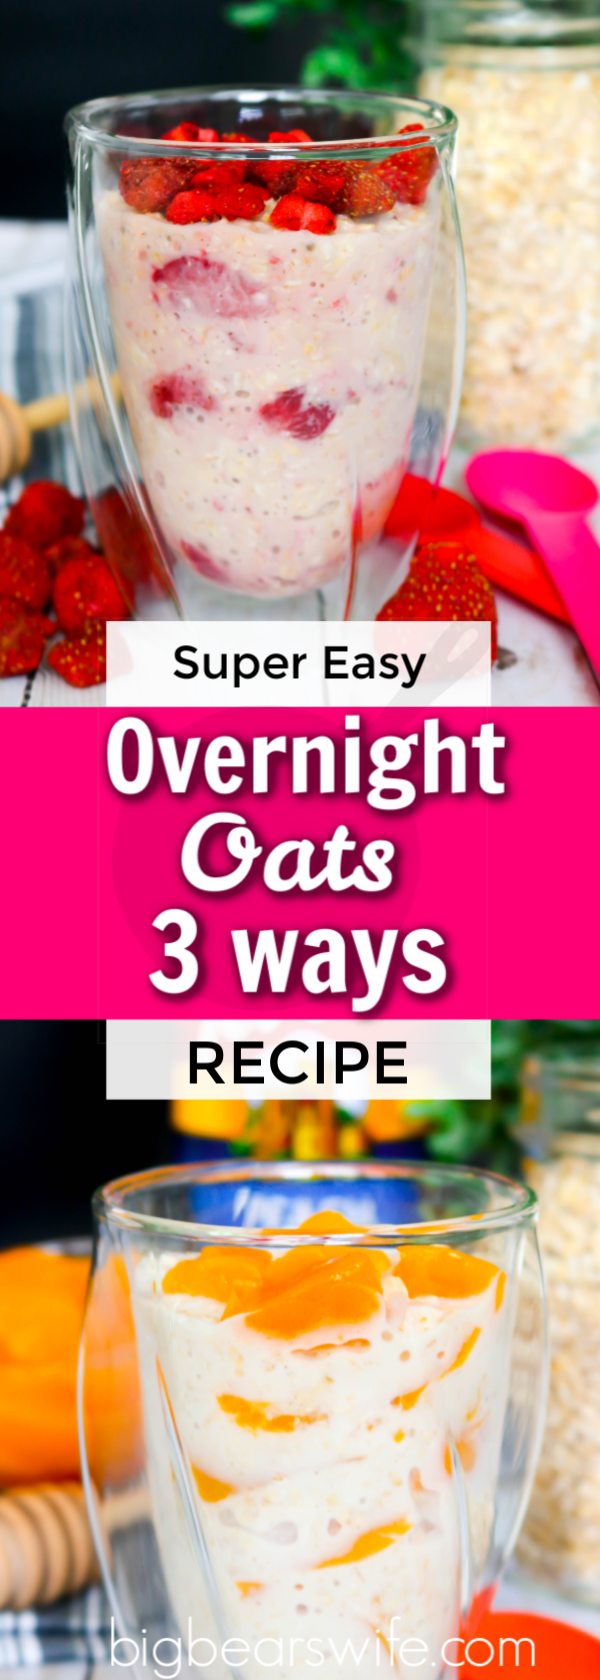 Looking for an easy breakfast or brunch idea? These overnight oats take about 5 minute to toss together and they're ready and waiting for you in the fridge when you wake up the next morning! Need variety? Good! You'll find Overnight Oats 3 Ways here!